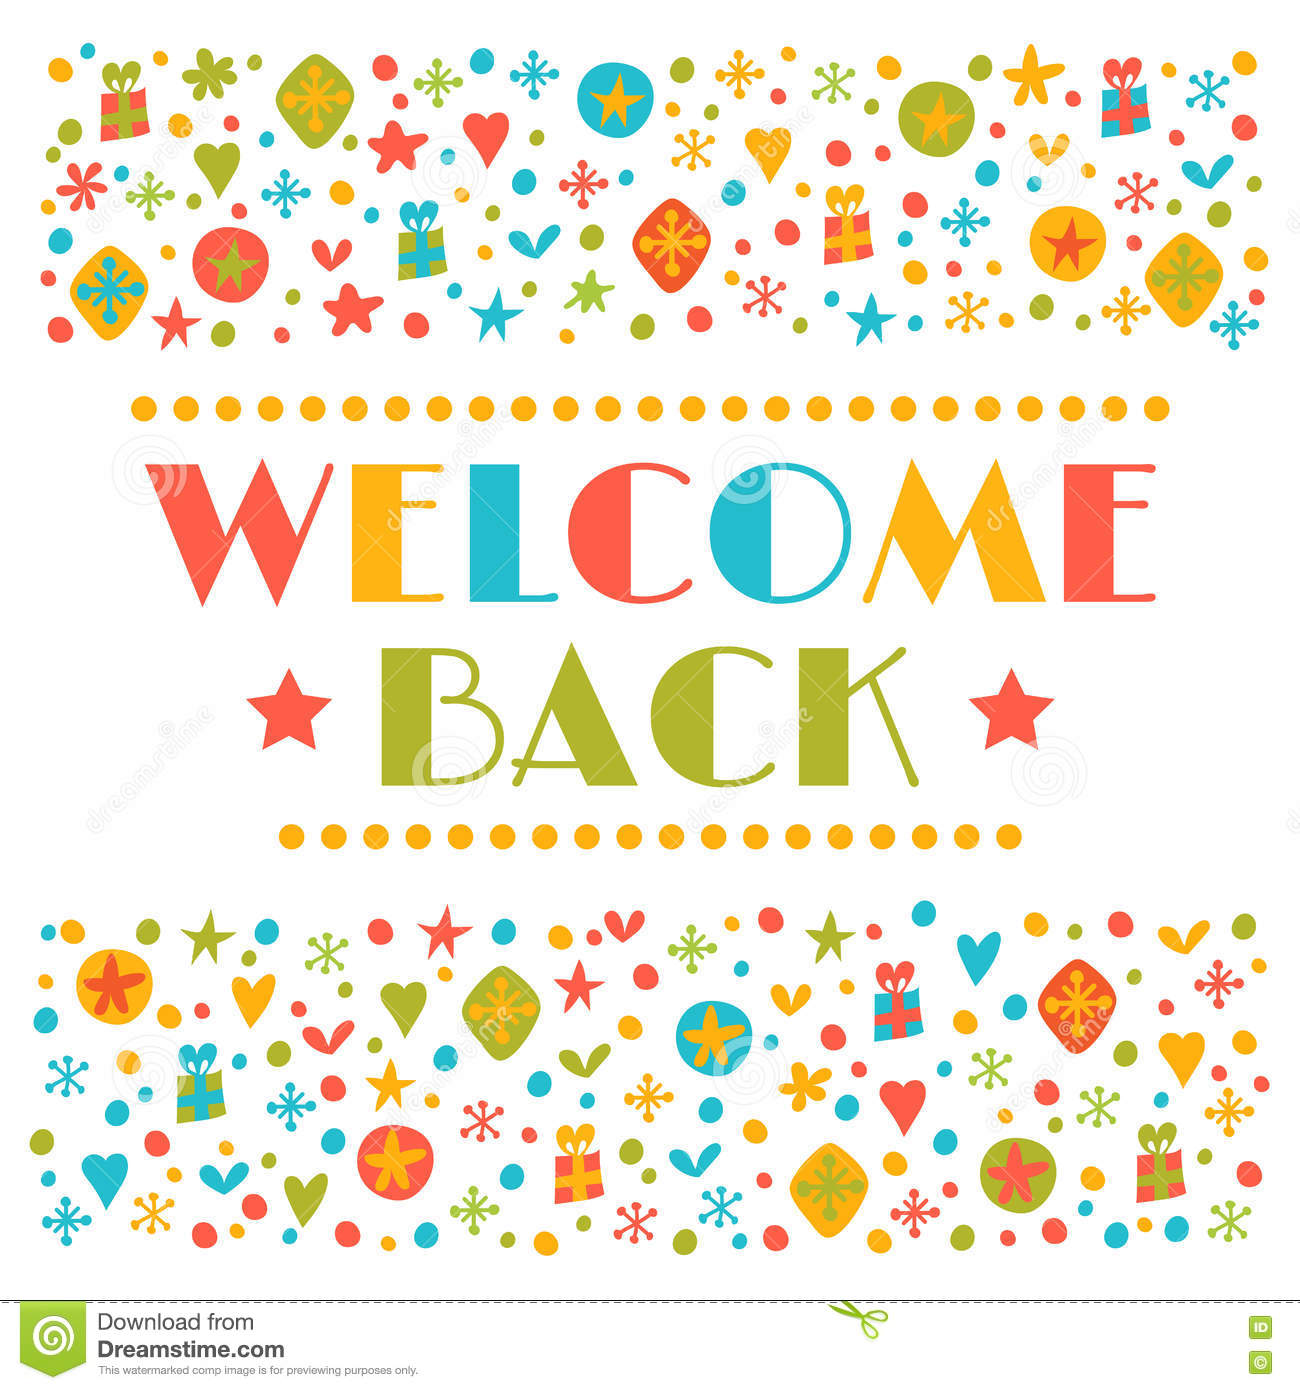 Welcome back text with colorful design elements greeting card welcome back text with colorful design elements greeting card kristyandbryce Gallery